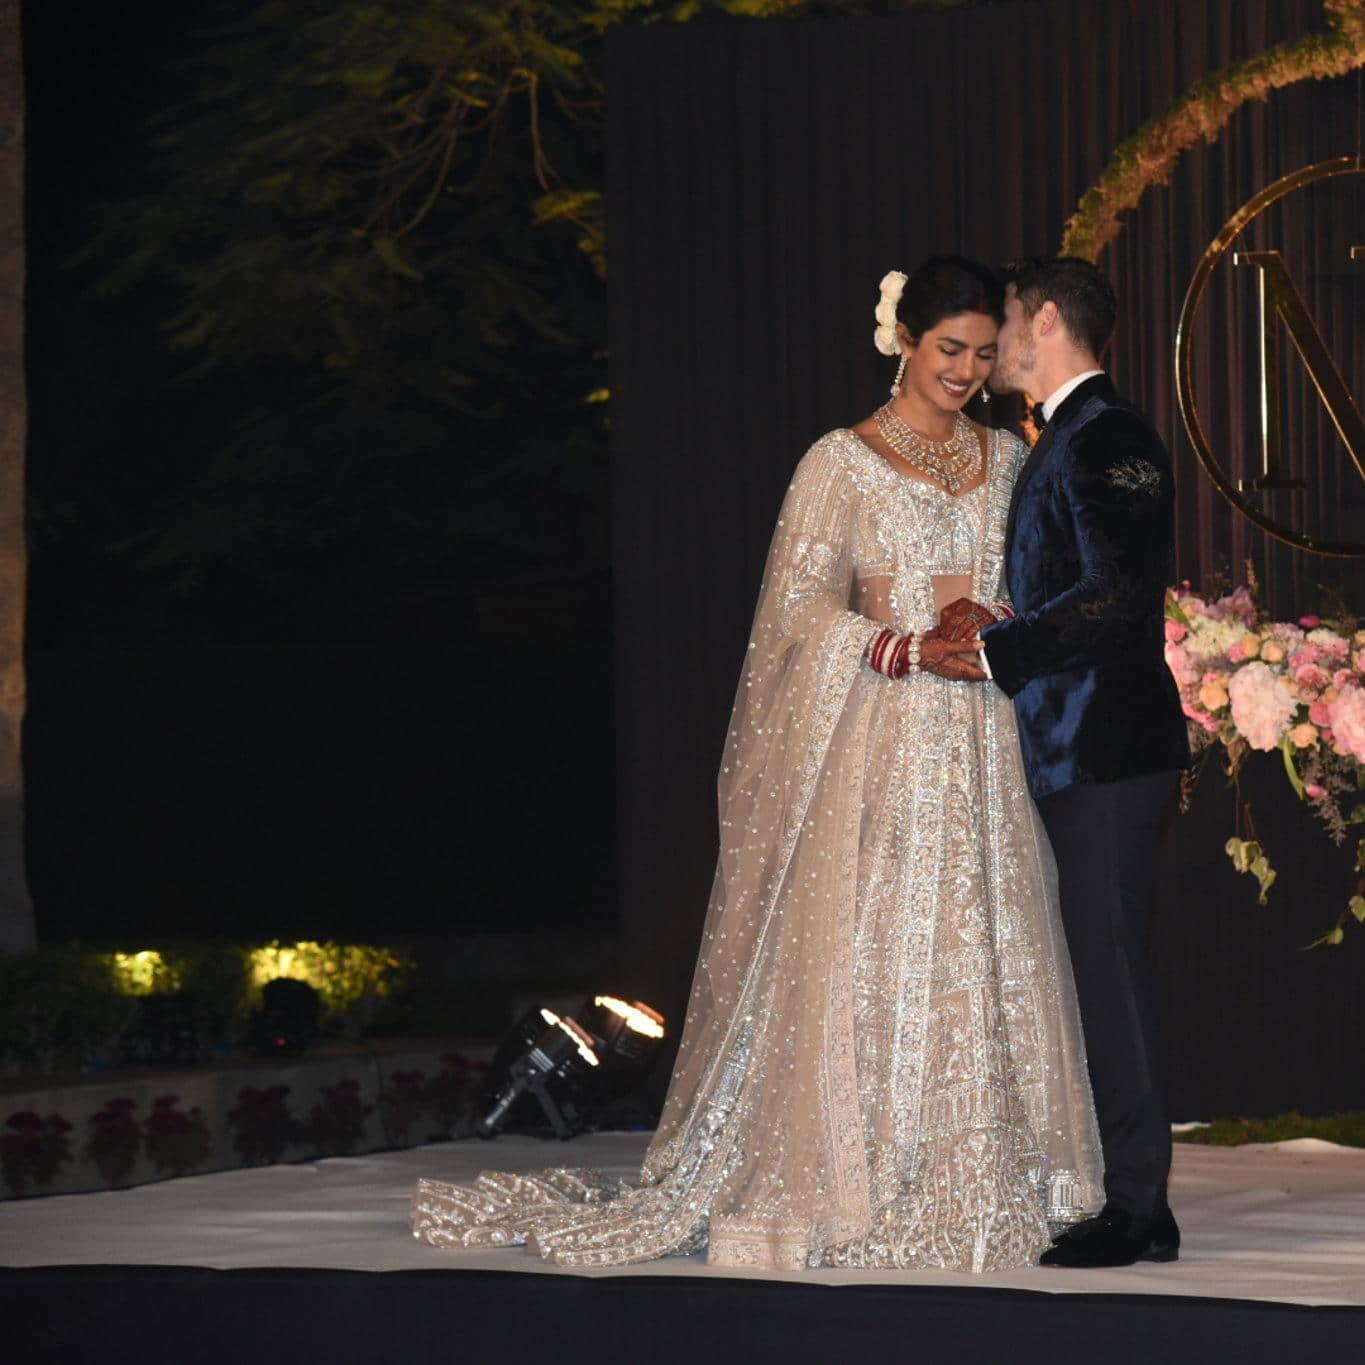 Check Out The Pictures From Priyanka Chopra And Nick Jonas' Grand Delhi Reception!